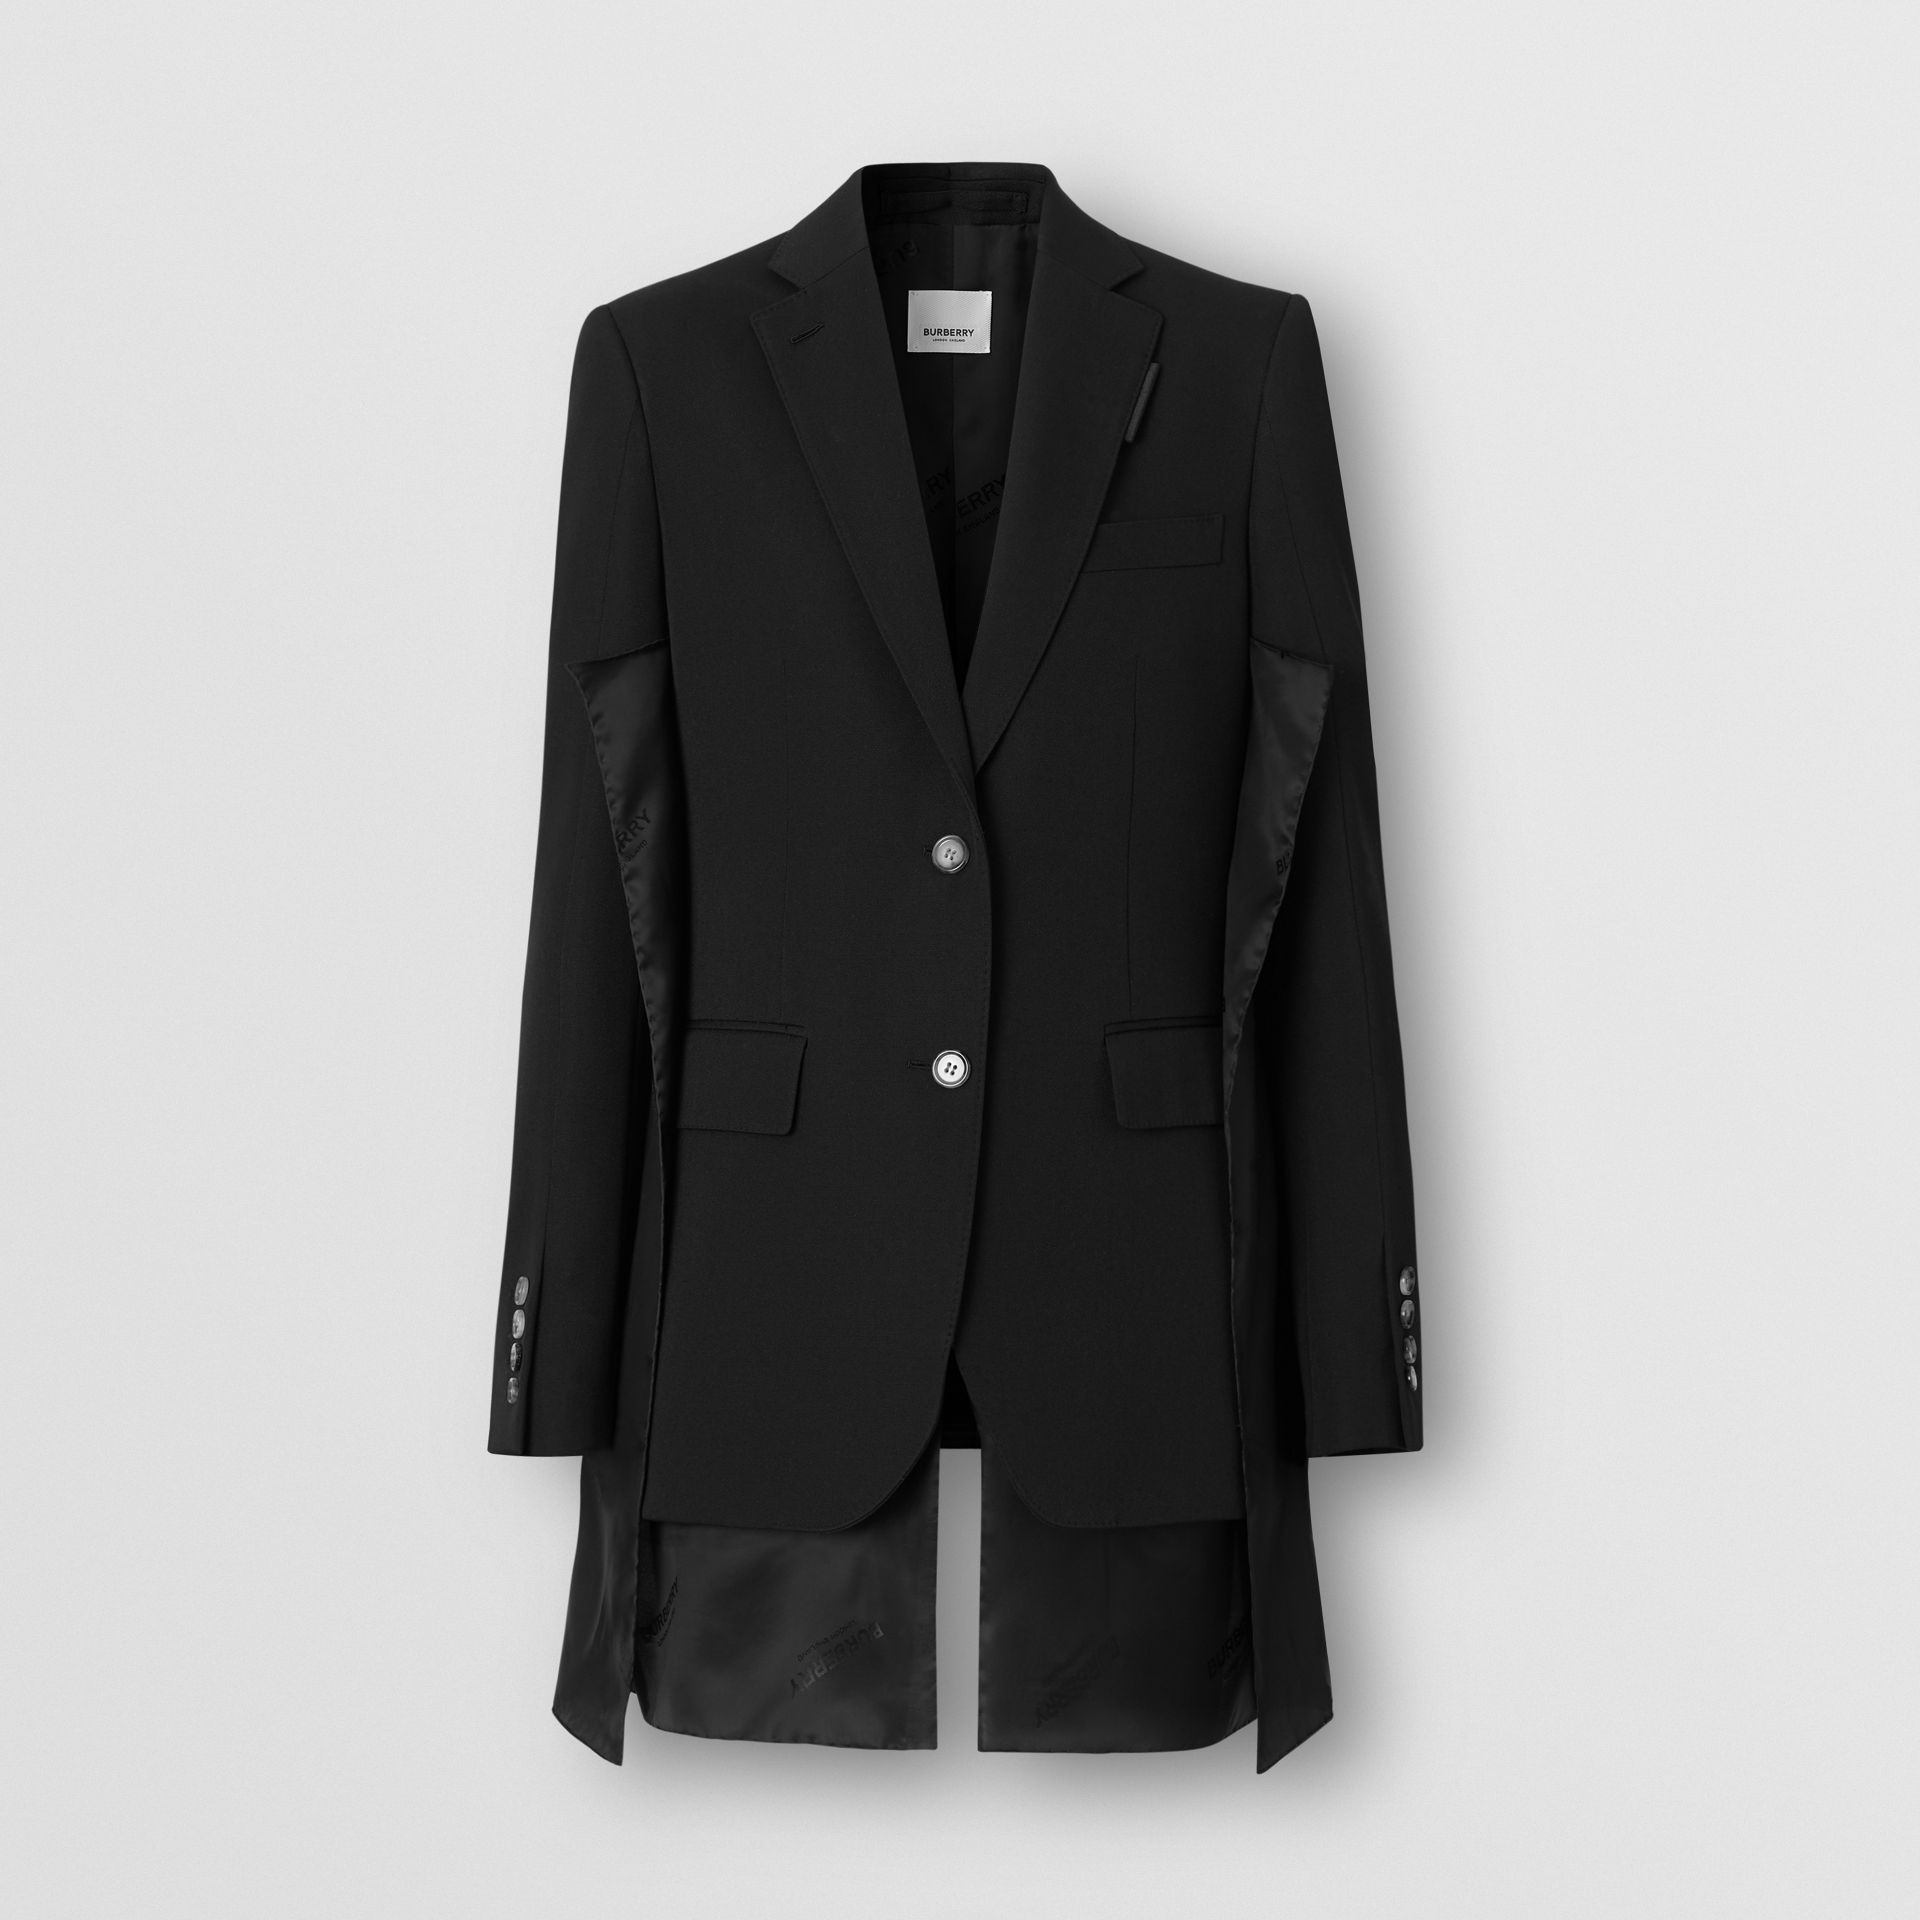 Logo Panel Detail Wool Tailored Jacket in Black - Women | Burberry United States - gallery image 3